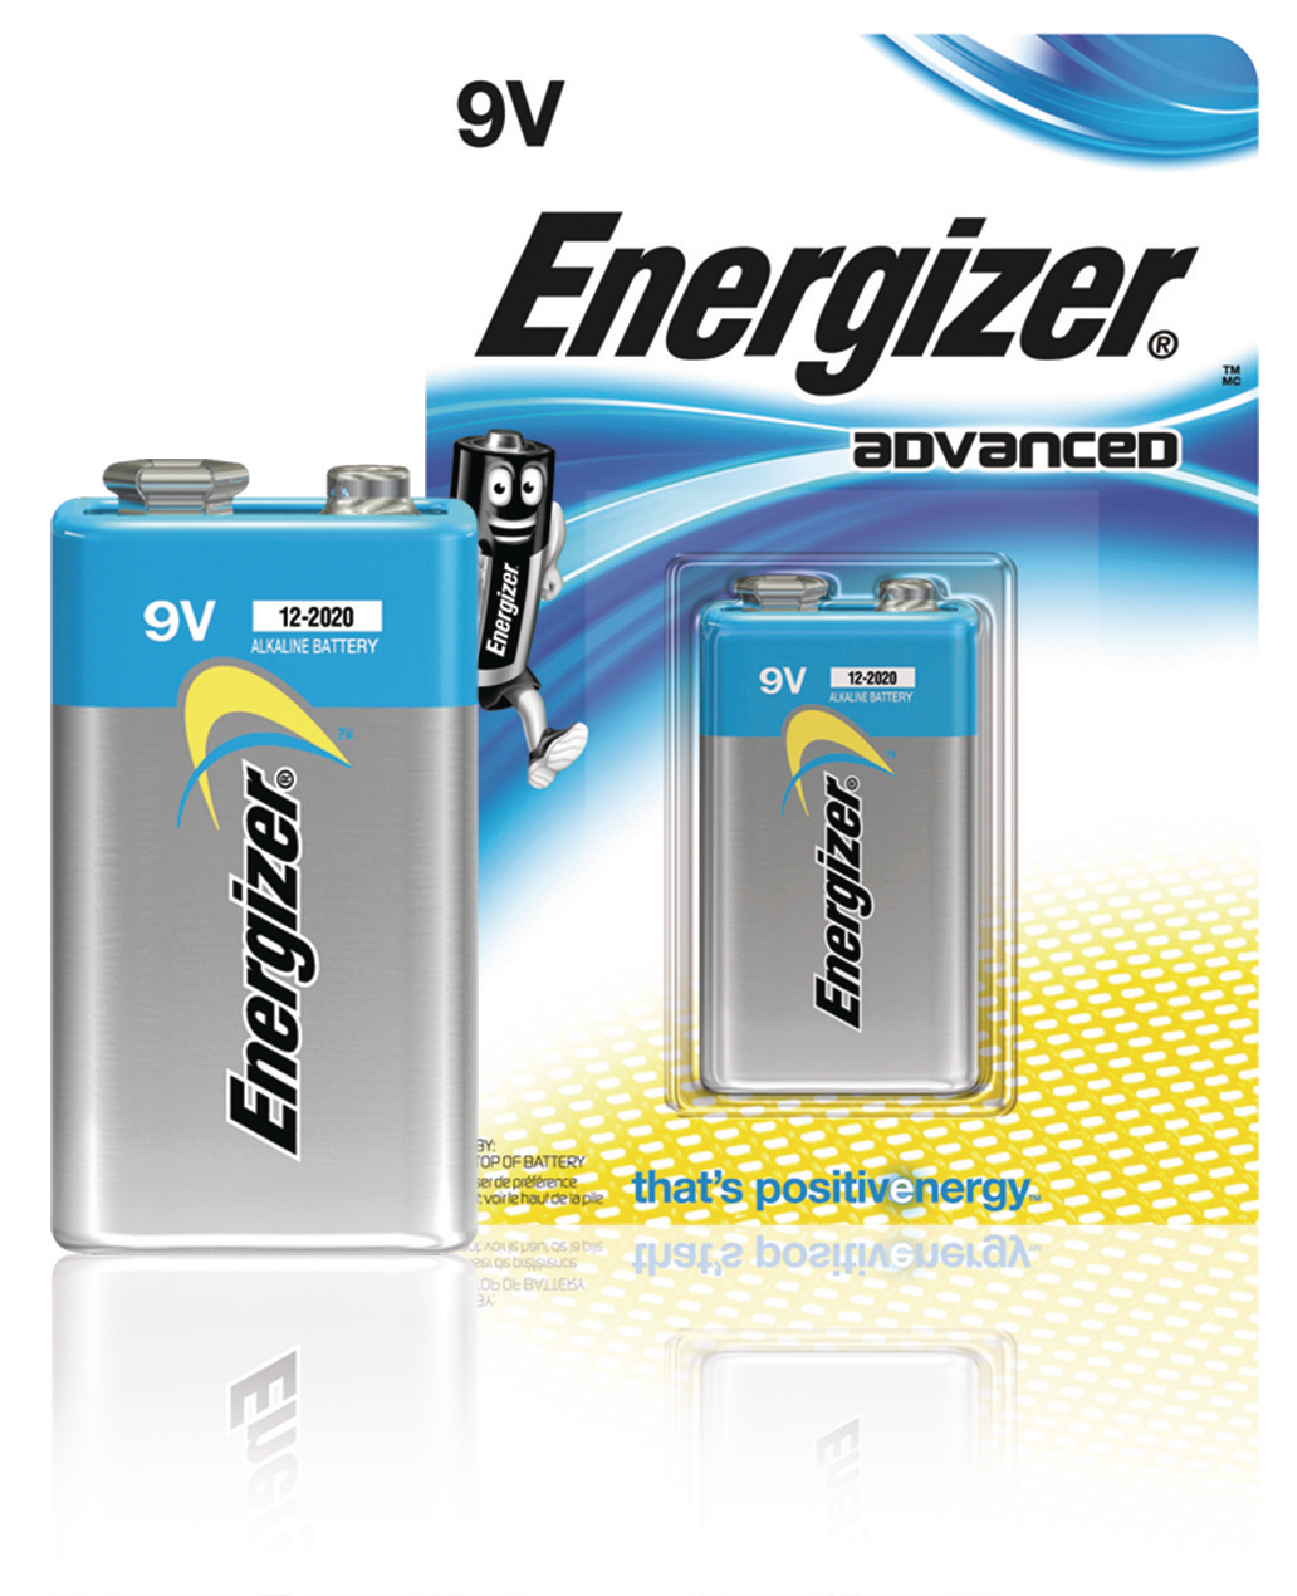 Alkalická baterie Energizer Advanced 9 V, 1ks, EN-53541037200